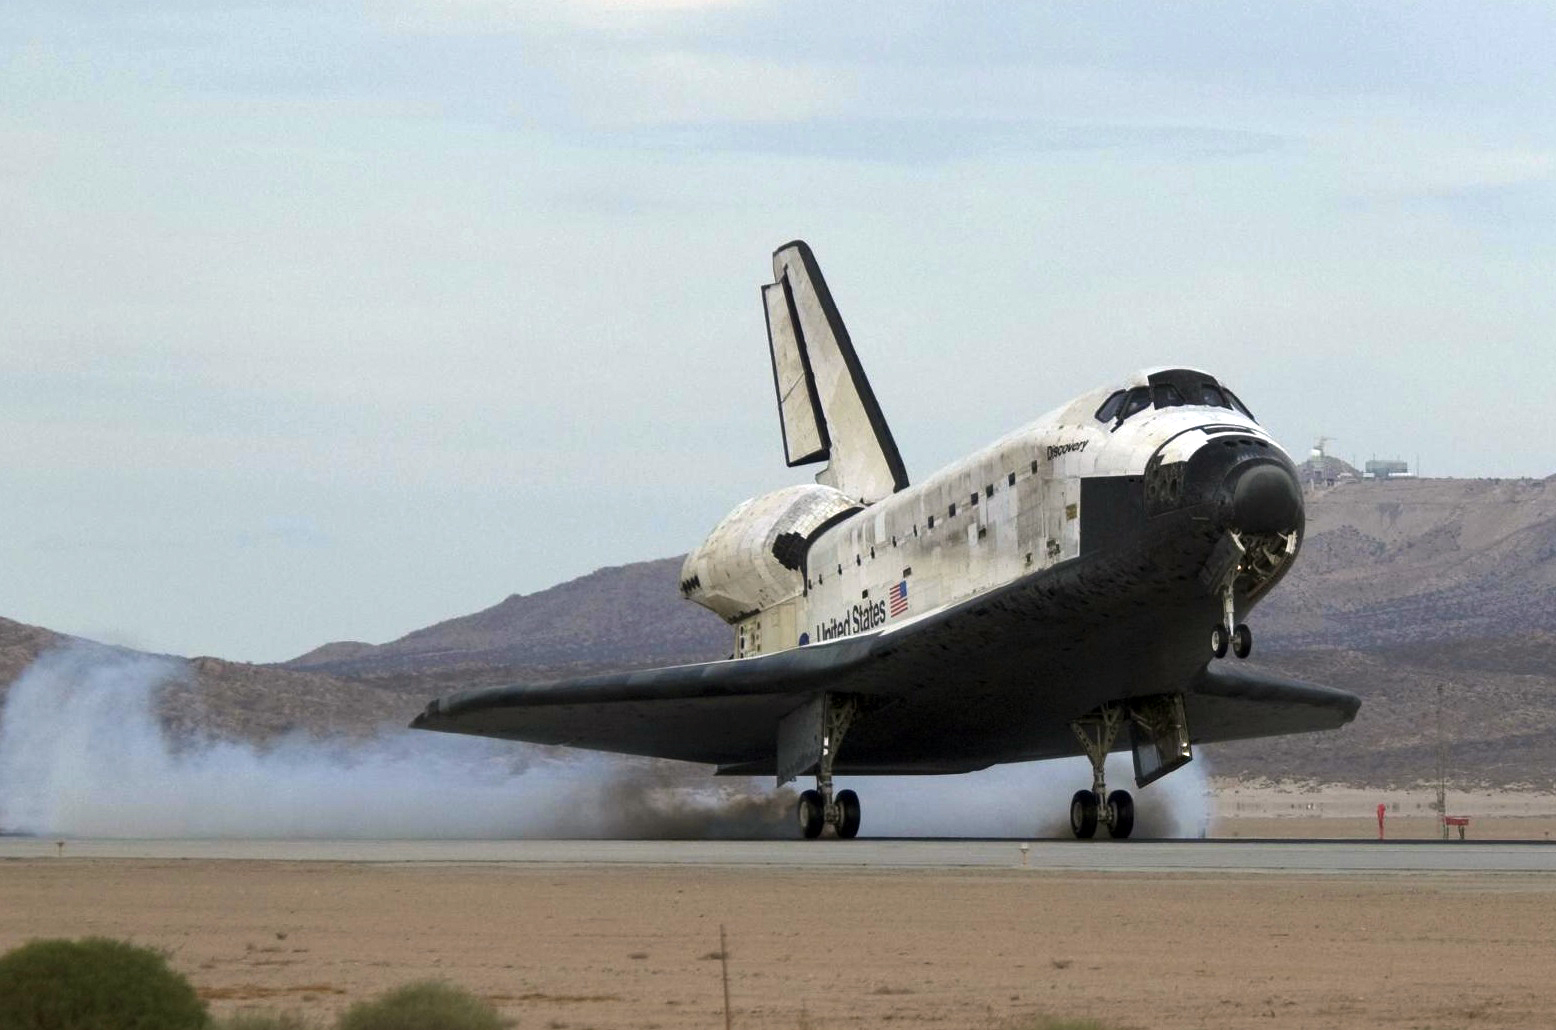 space shuttle runway - photo #33